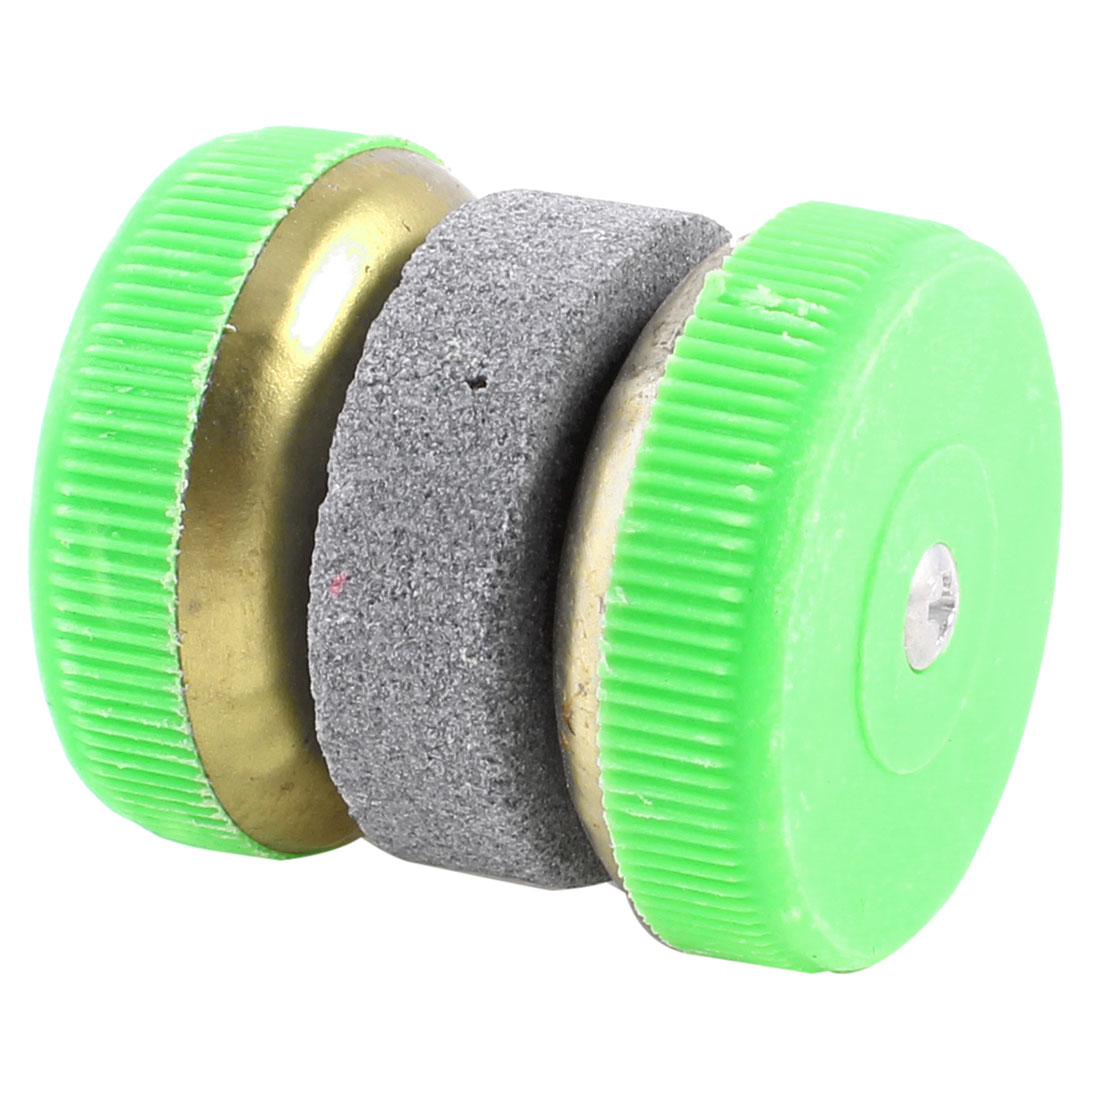 Home Plastic Wheel Grinding Cutter Sharping Whetstone Sharpener Lime Green